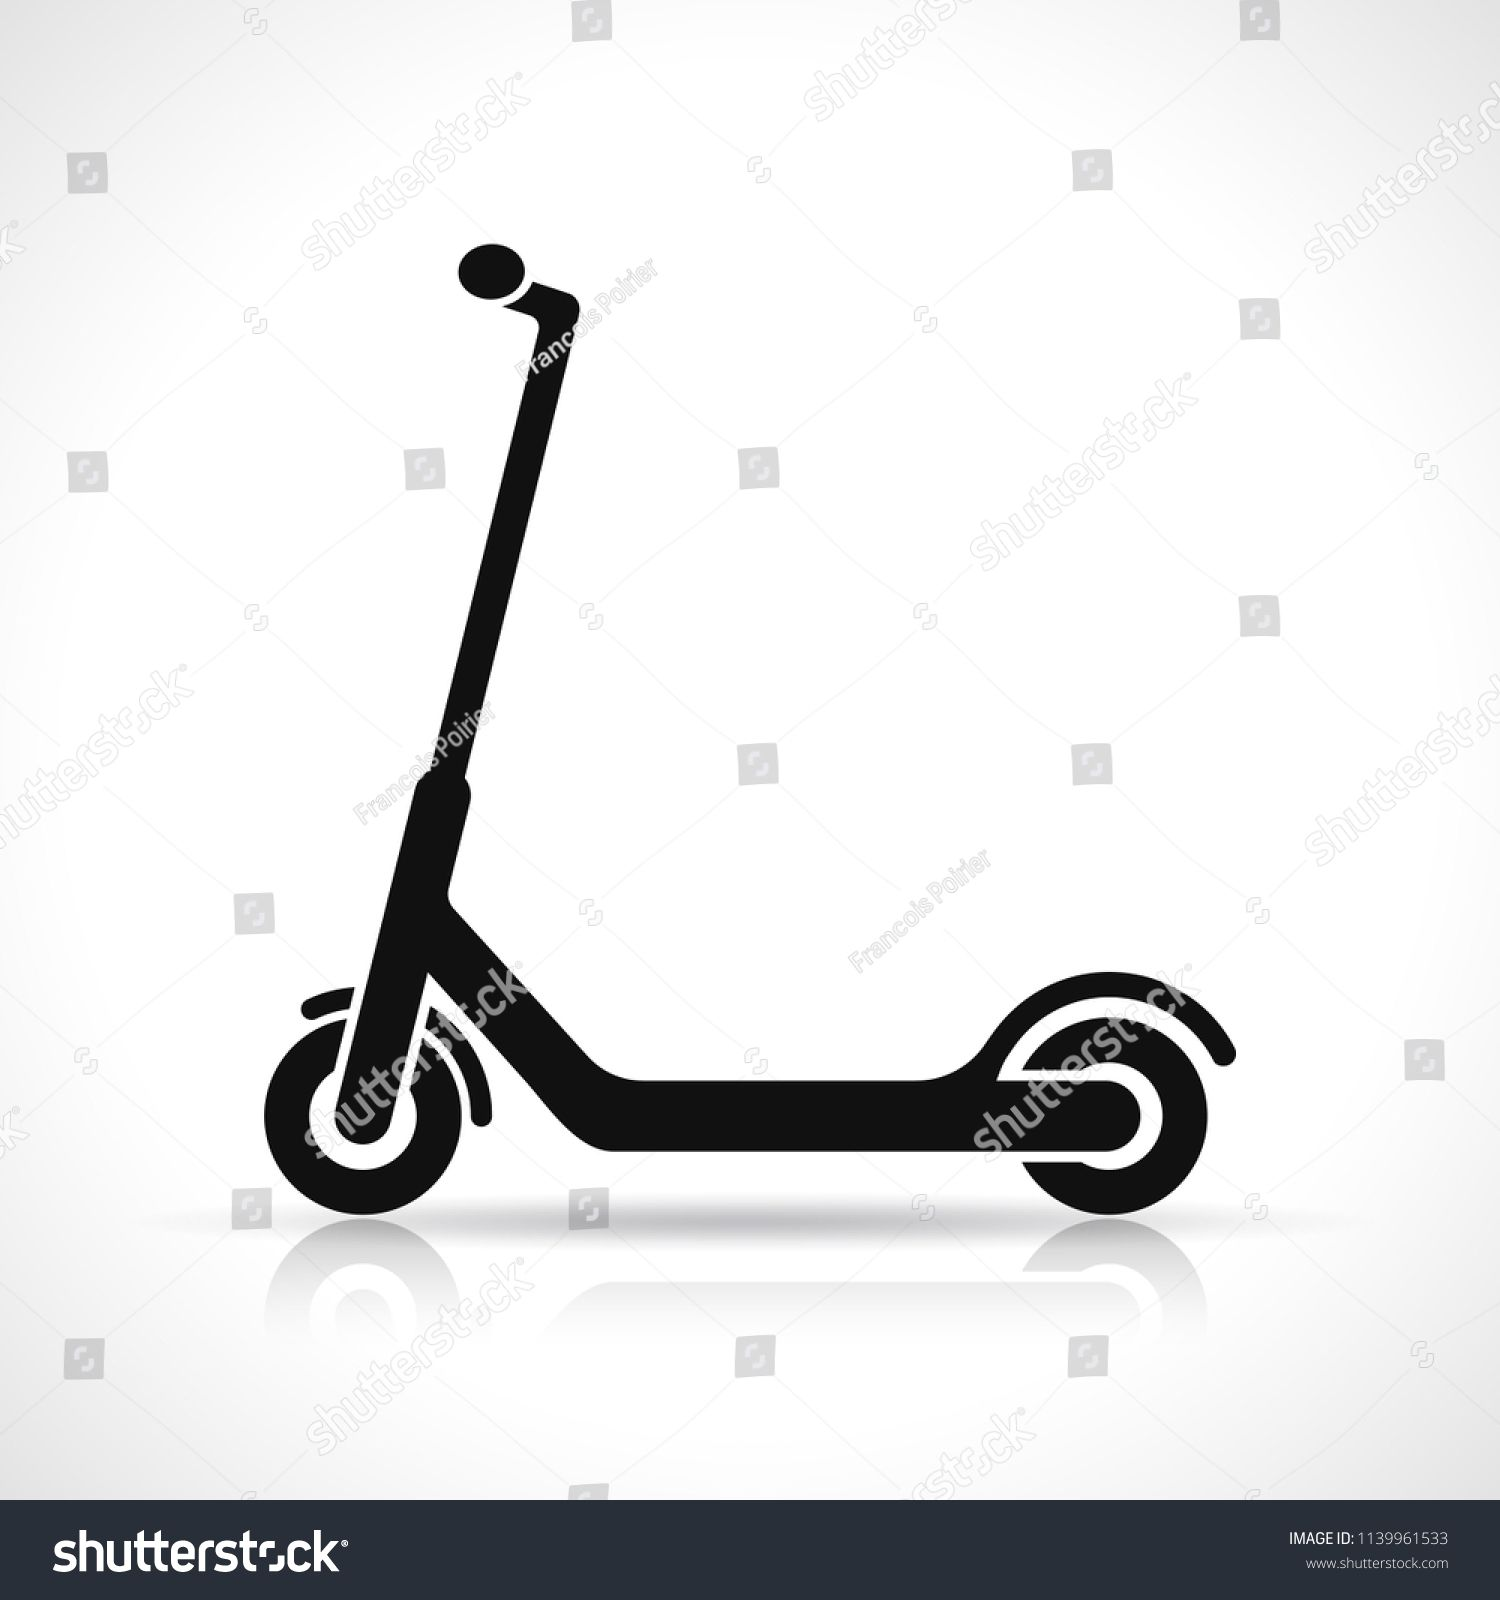 vector scooter icon design on white background sponsored affiliate icon scooter vector background icon design white stock image vector background vector scooter icon design on white